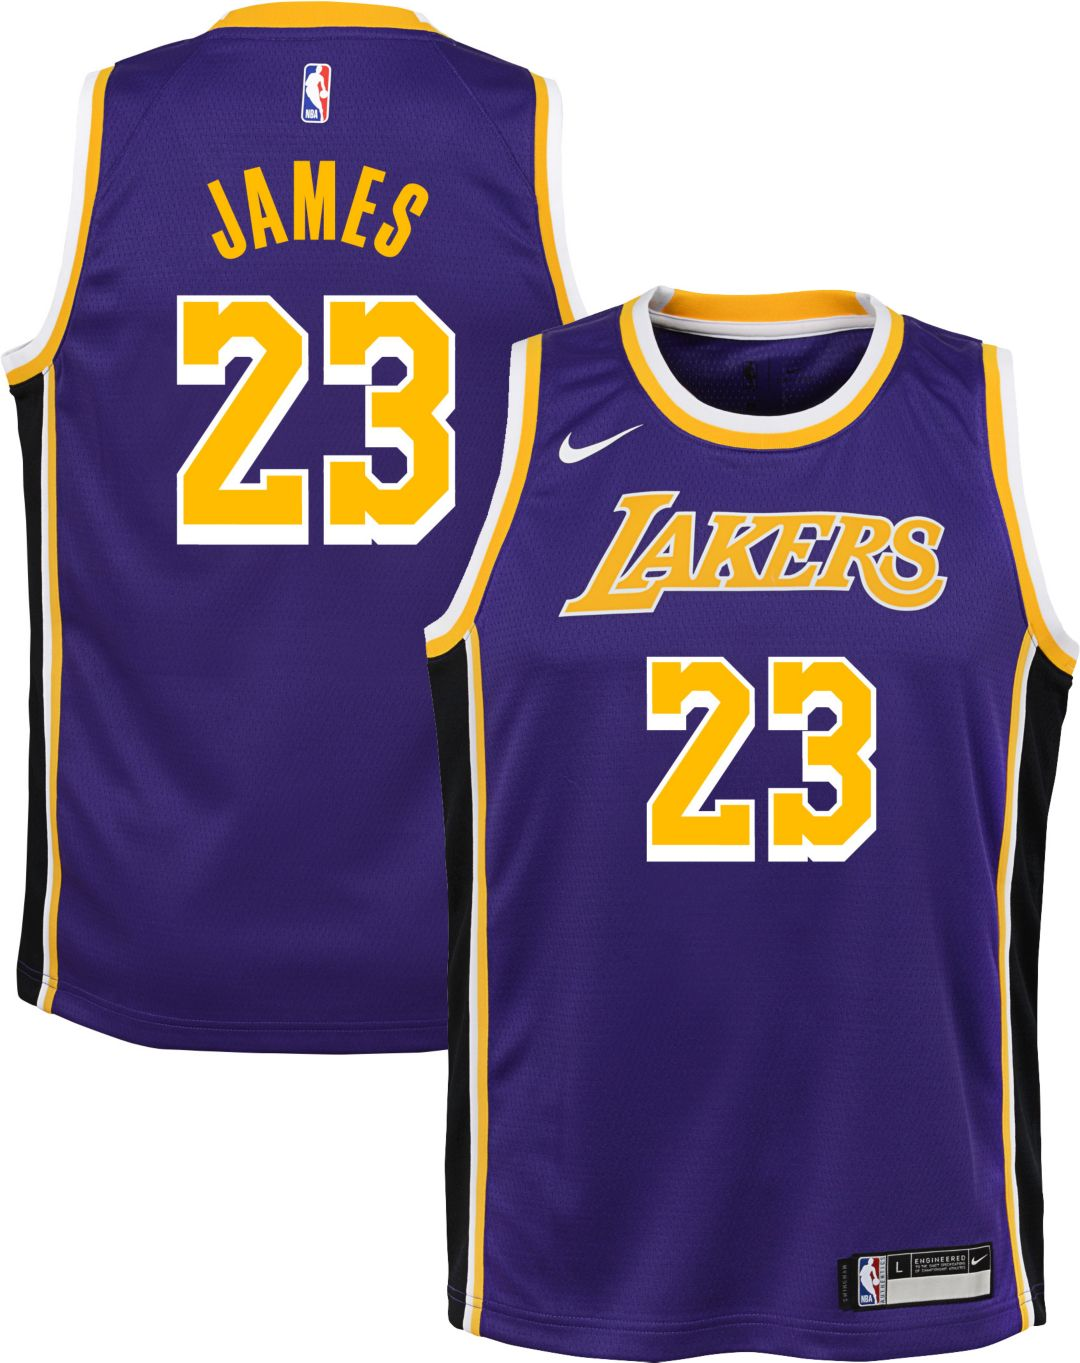 more photos 7d80b b26ca Nike Youth Los Angeles Lakers LeBron James Dri-FIT Purple Swingman Jersey